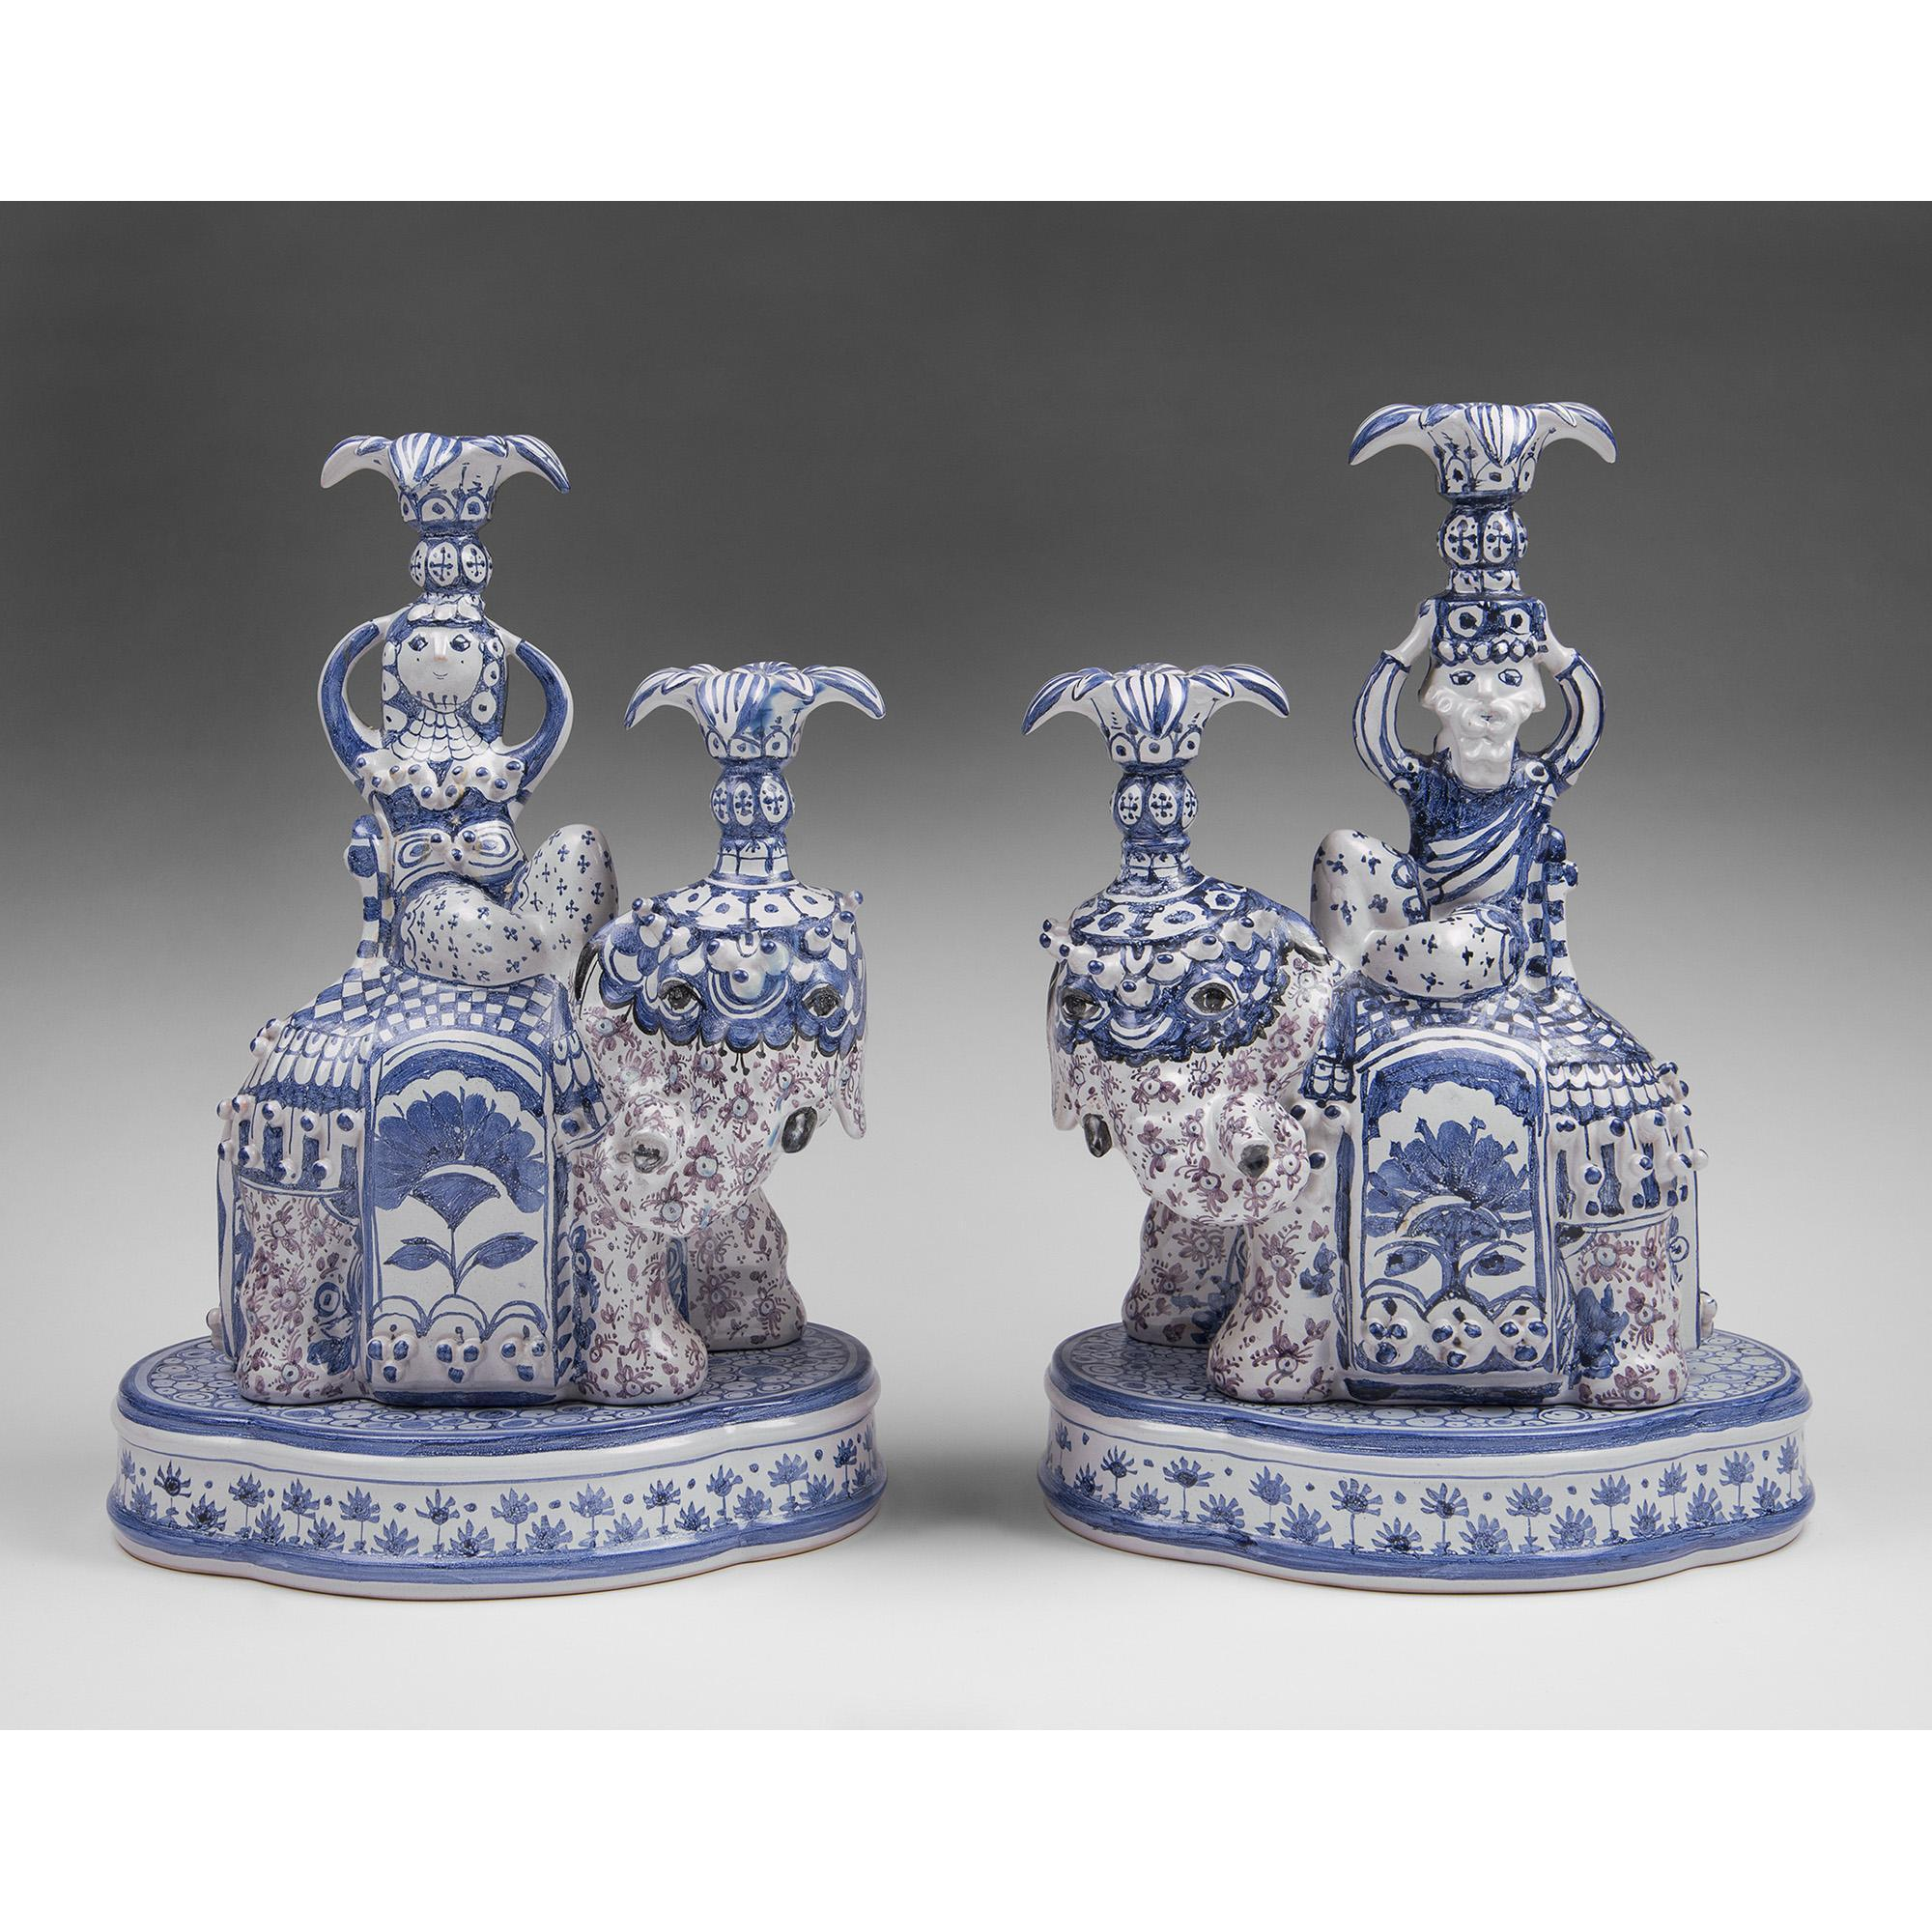 Bjorn Wiinblad Elephant Candlesticks, King And Queen Of Sheba